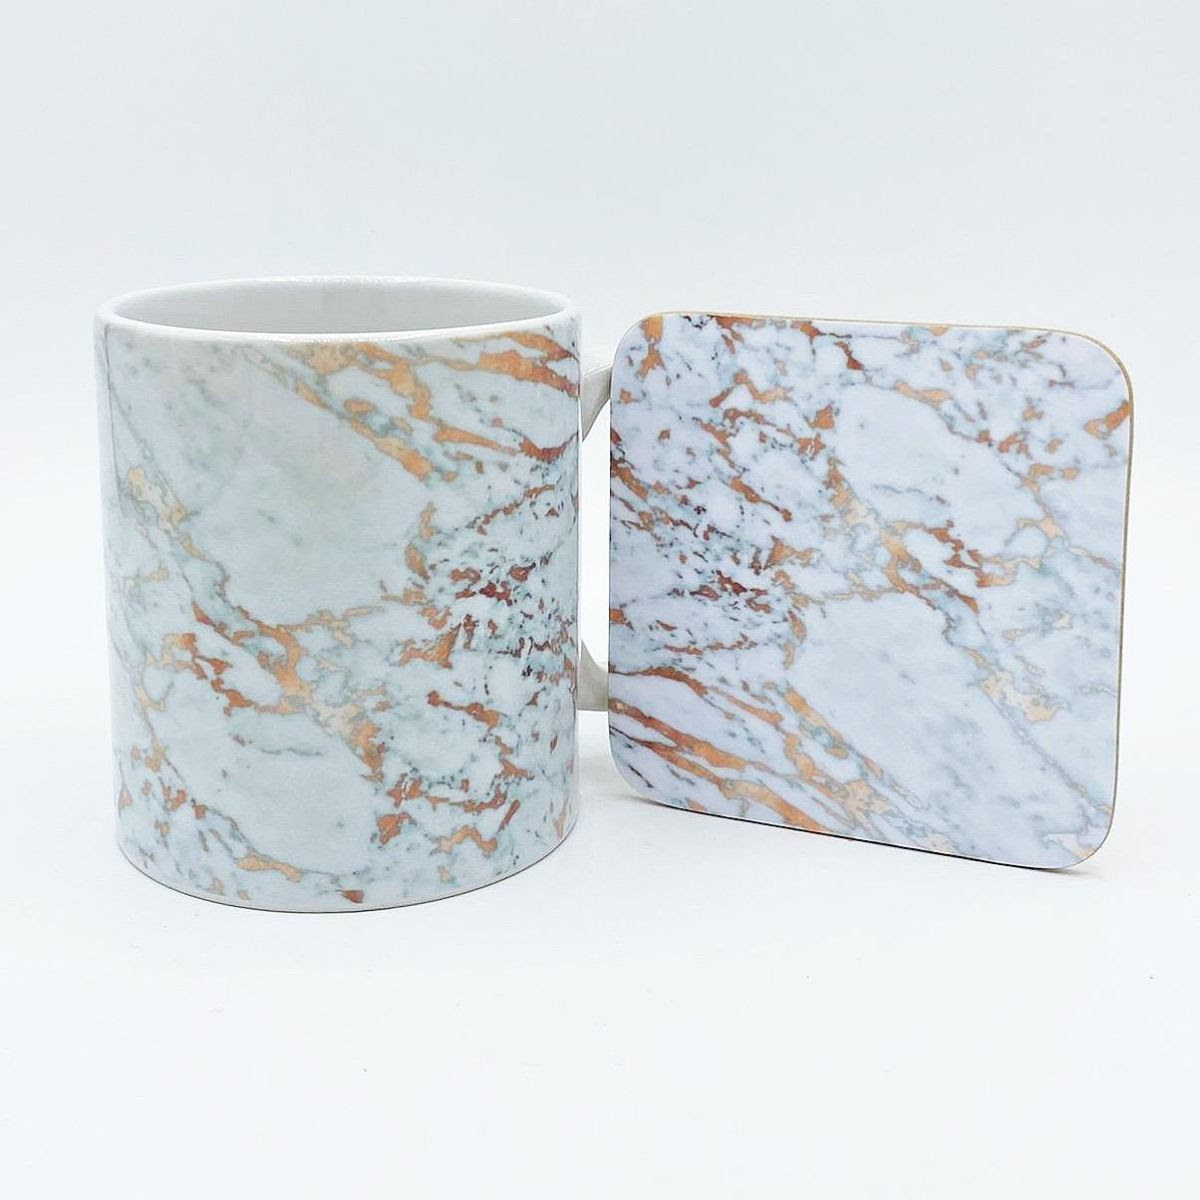 Rose Gold Marbleised Mug and coaster available to buy online at www.qwinkydink.co.uk